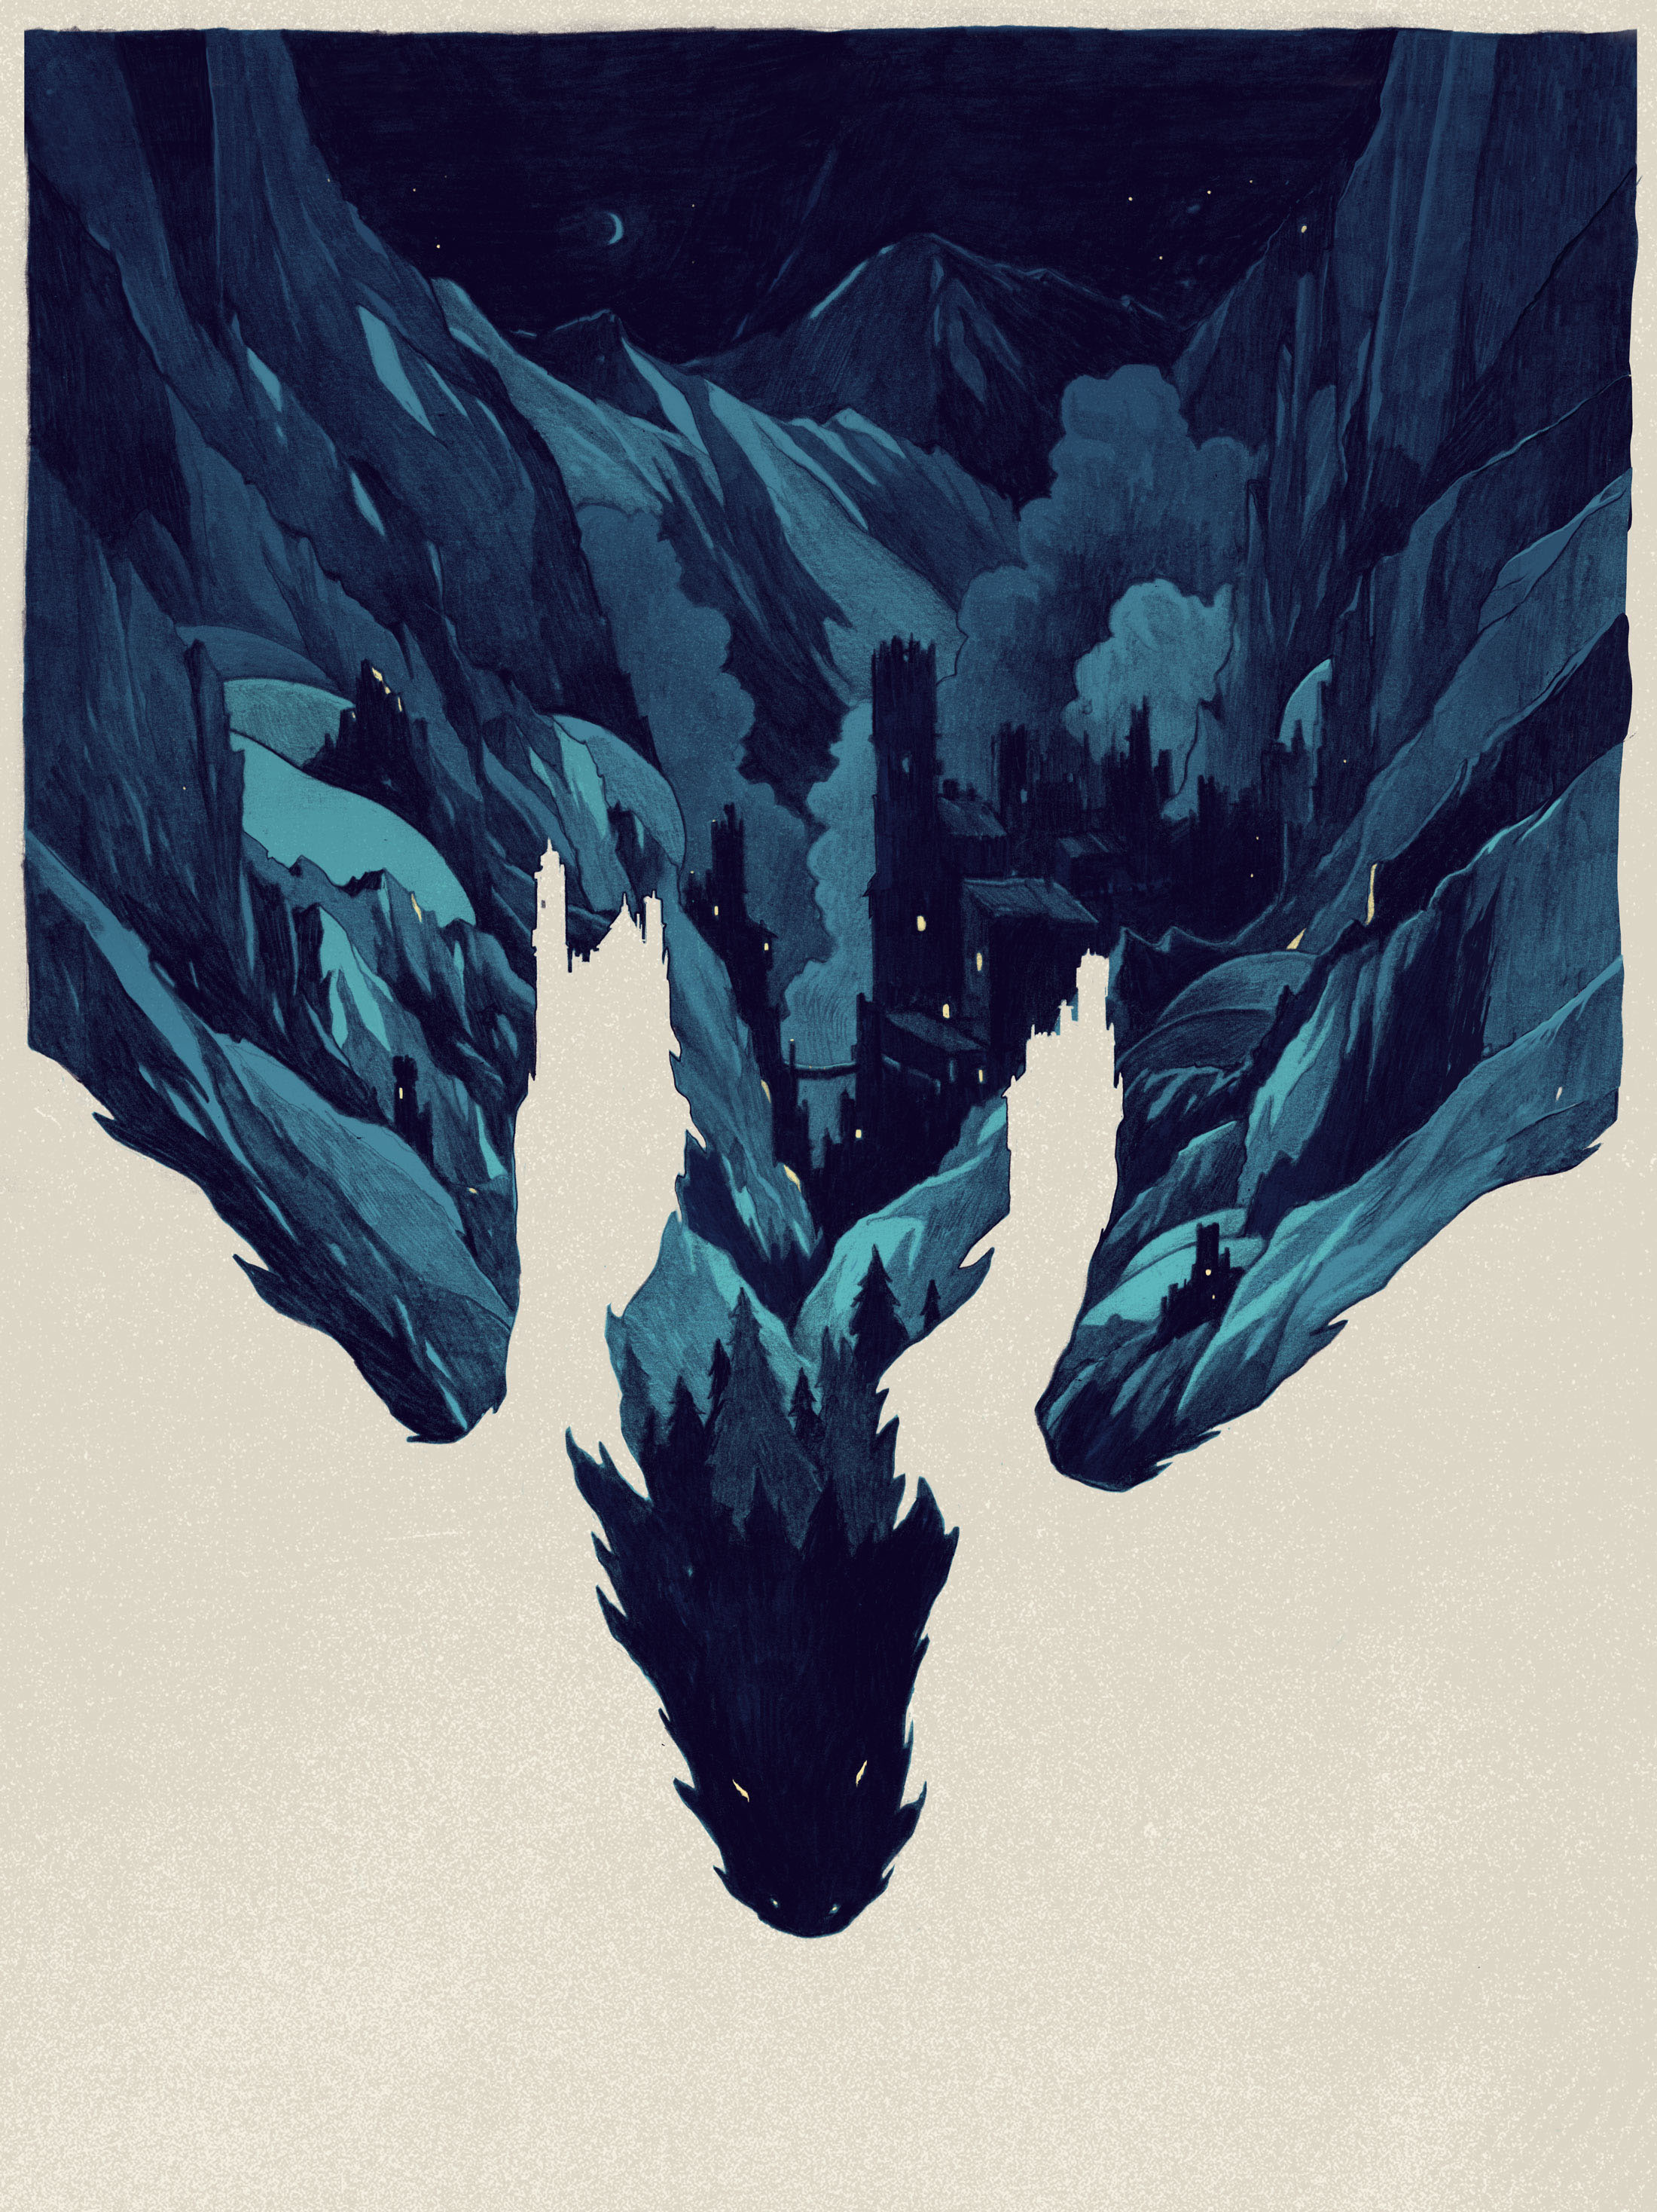 Mysterious Illustrations by Simon Prades